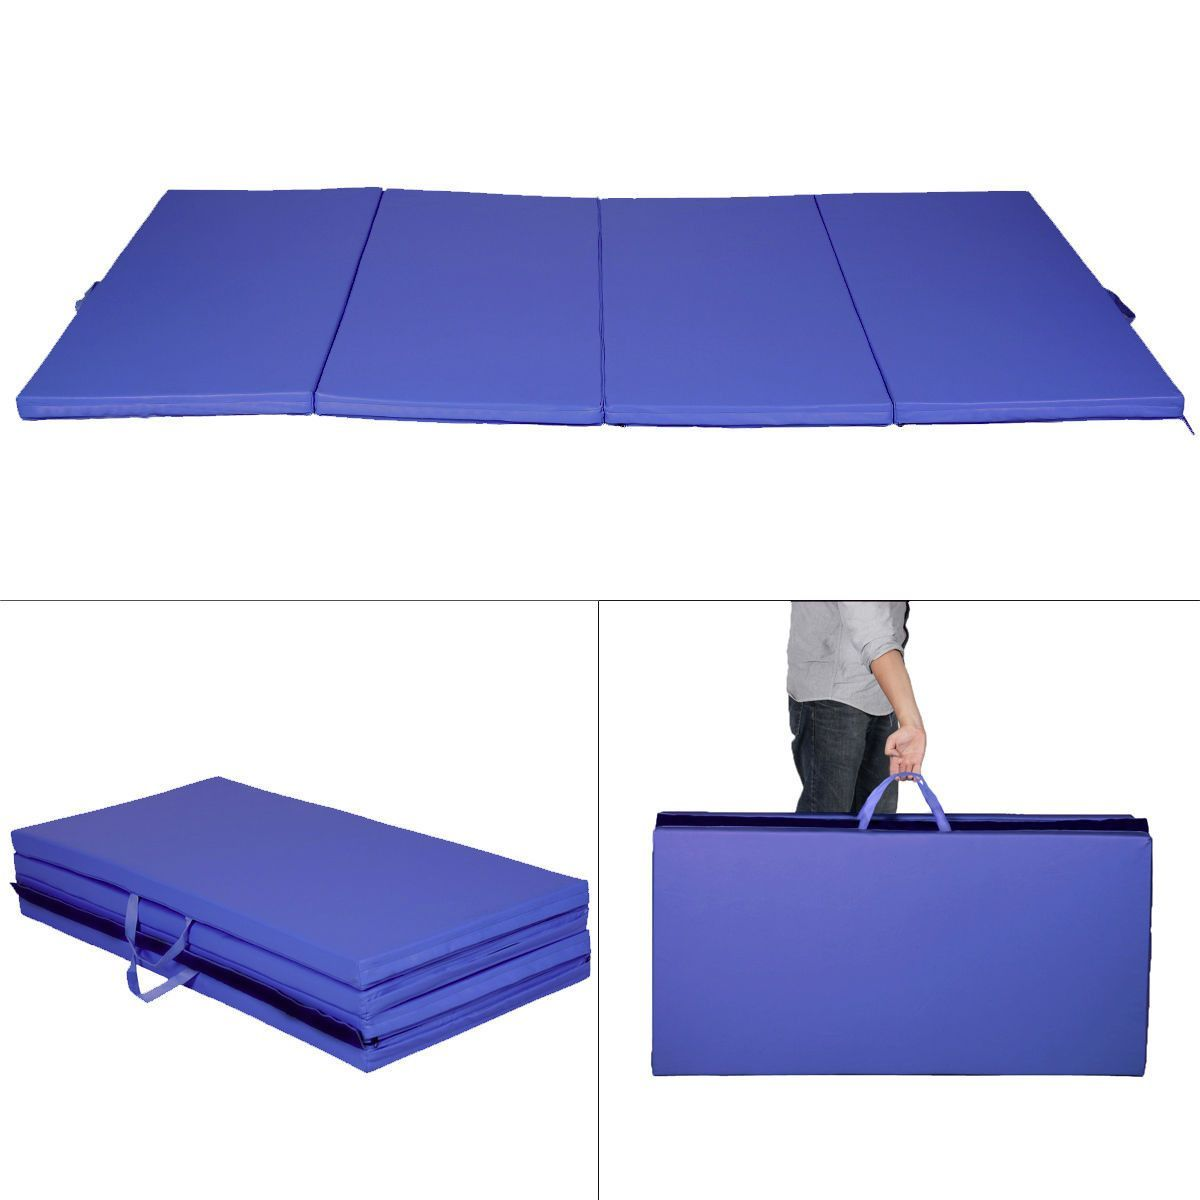 shape sale beef preschool costway mat gymnastics for tumbler kids mats skill walmart com octagon ip exercise x gym cheap